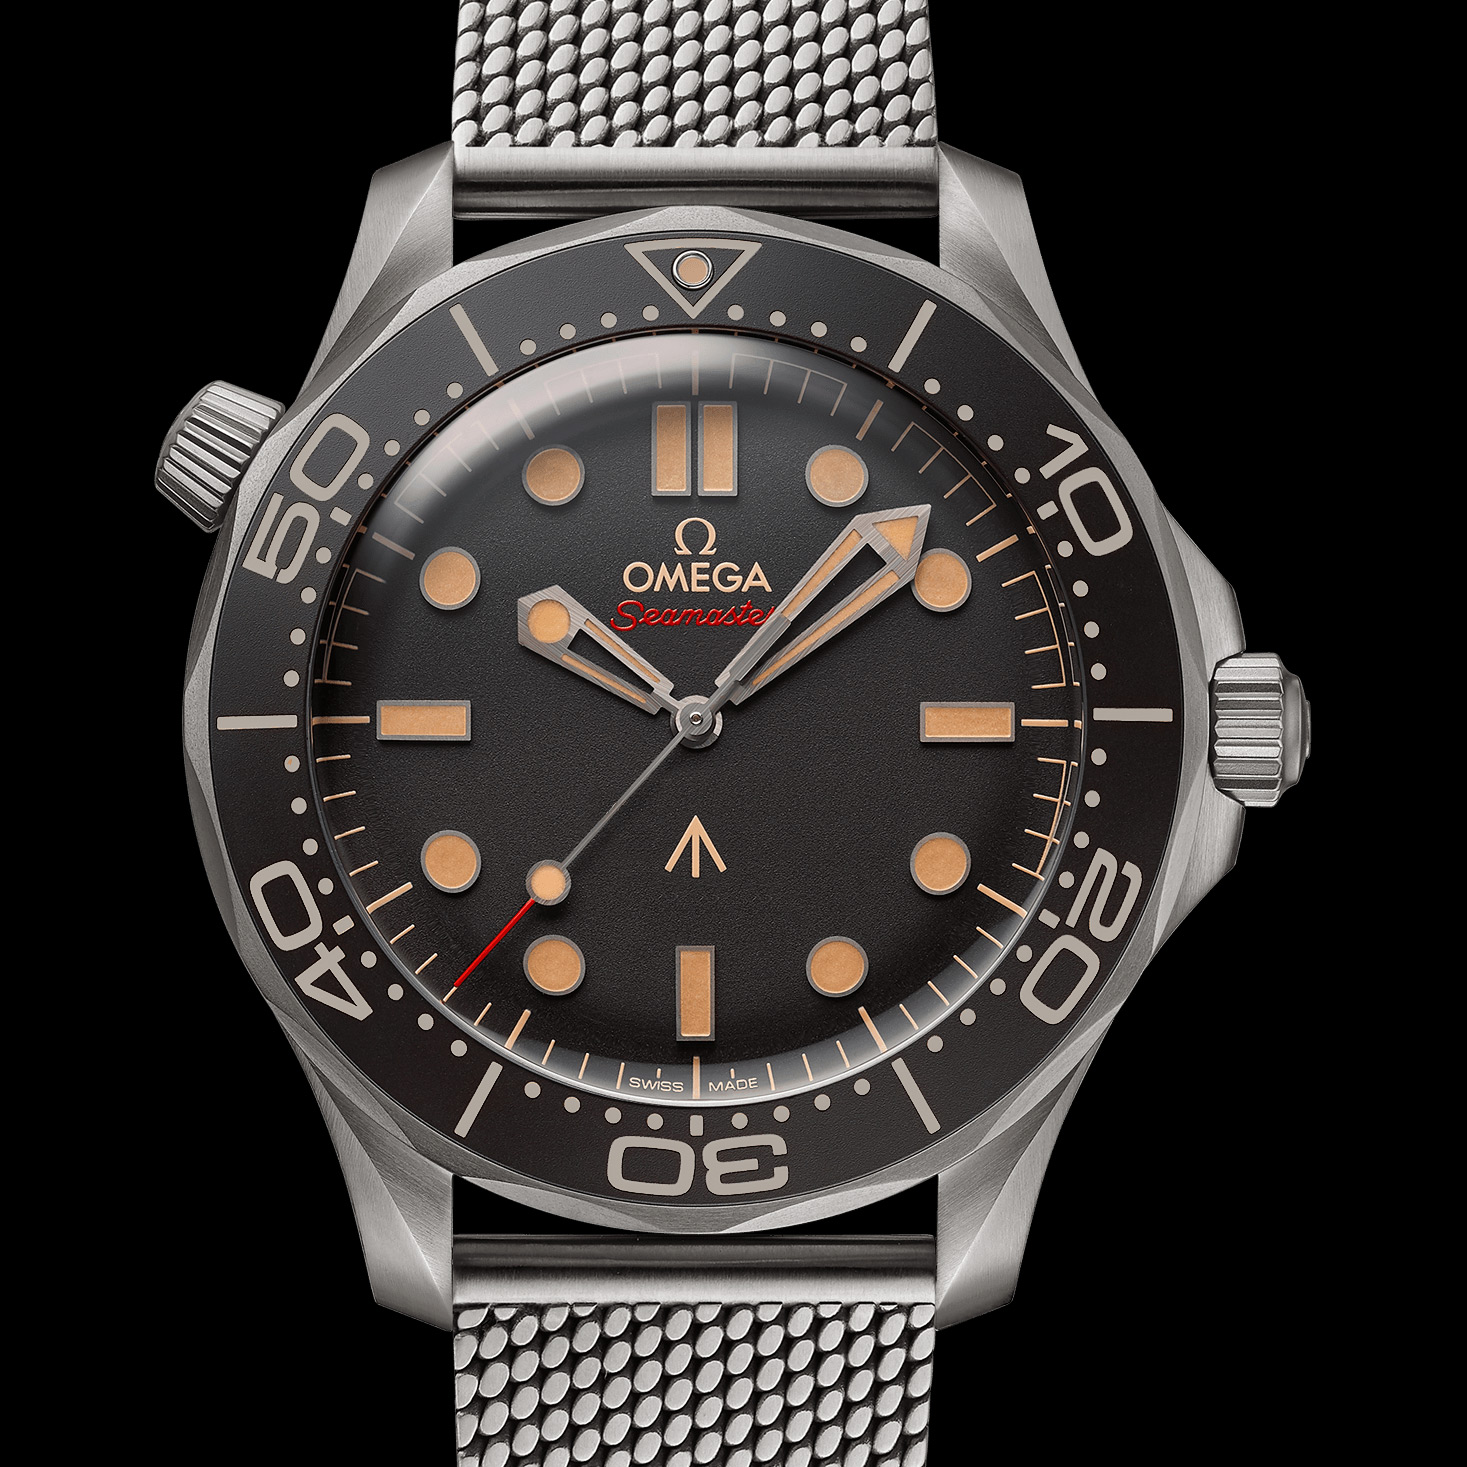 191205-omega-seamaster-300-james-bond.jpg